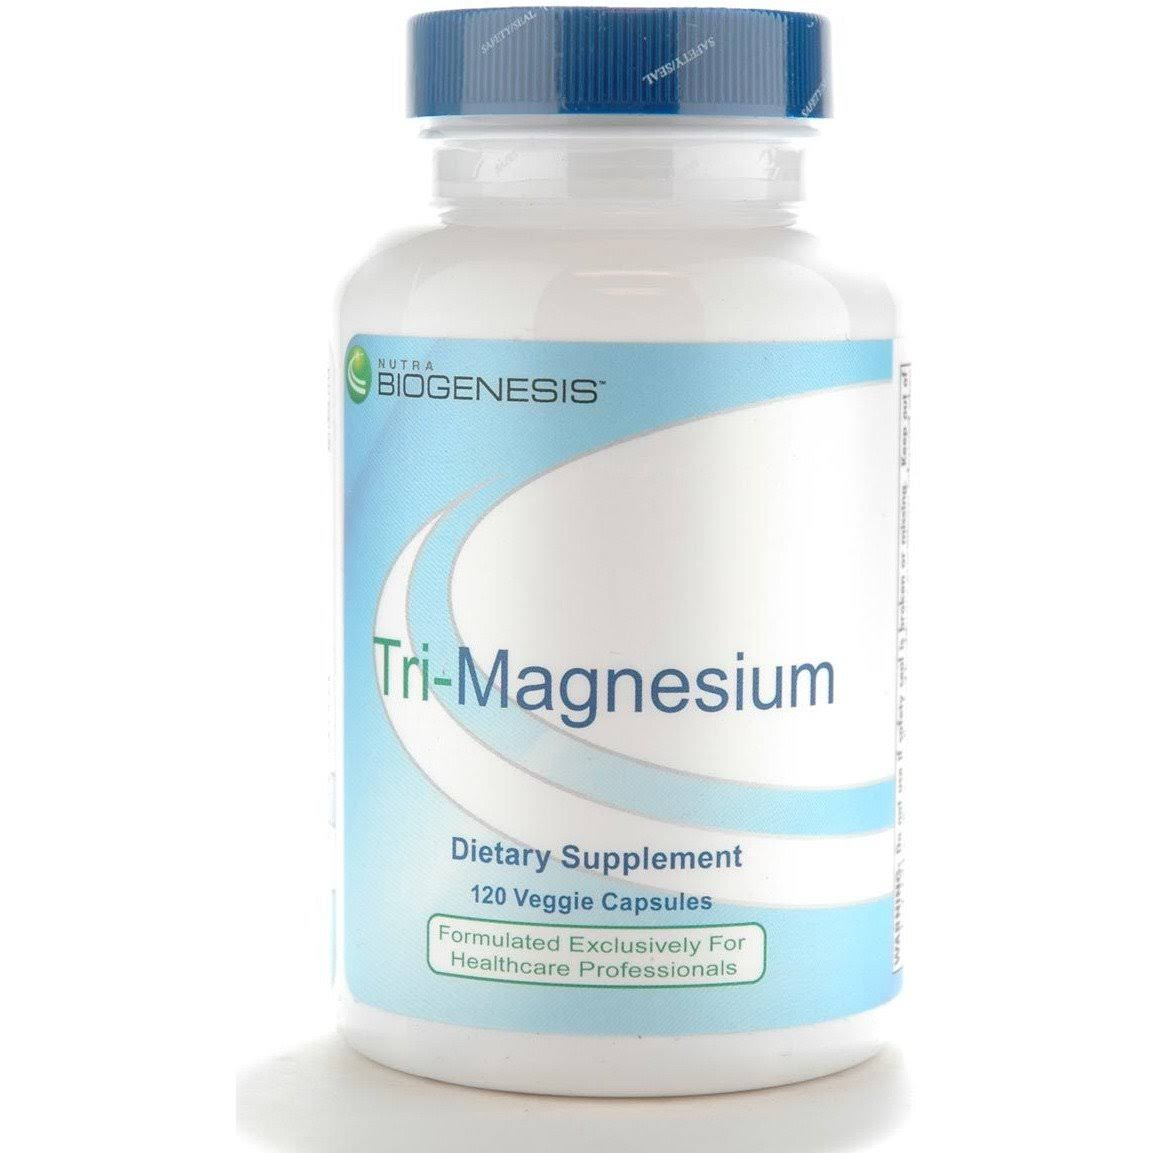 Biogenesis Nutraceuticals Tri-Magnesium Dietary Supplement - 120 Capsules